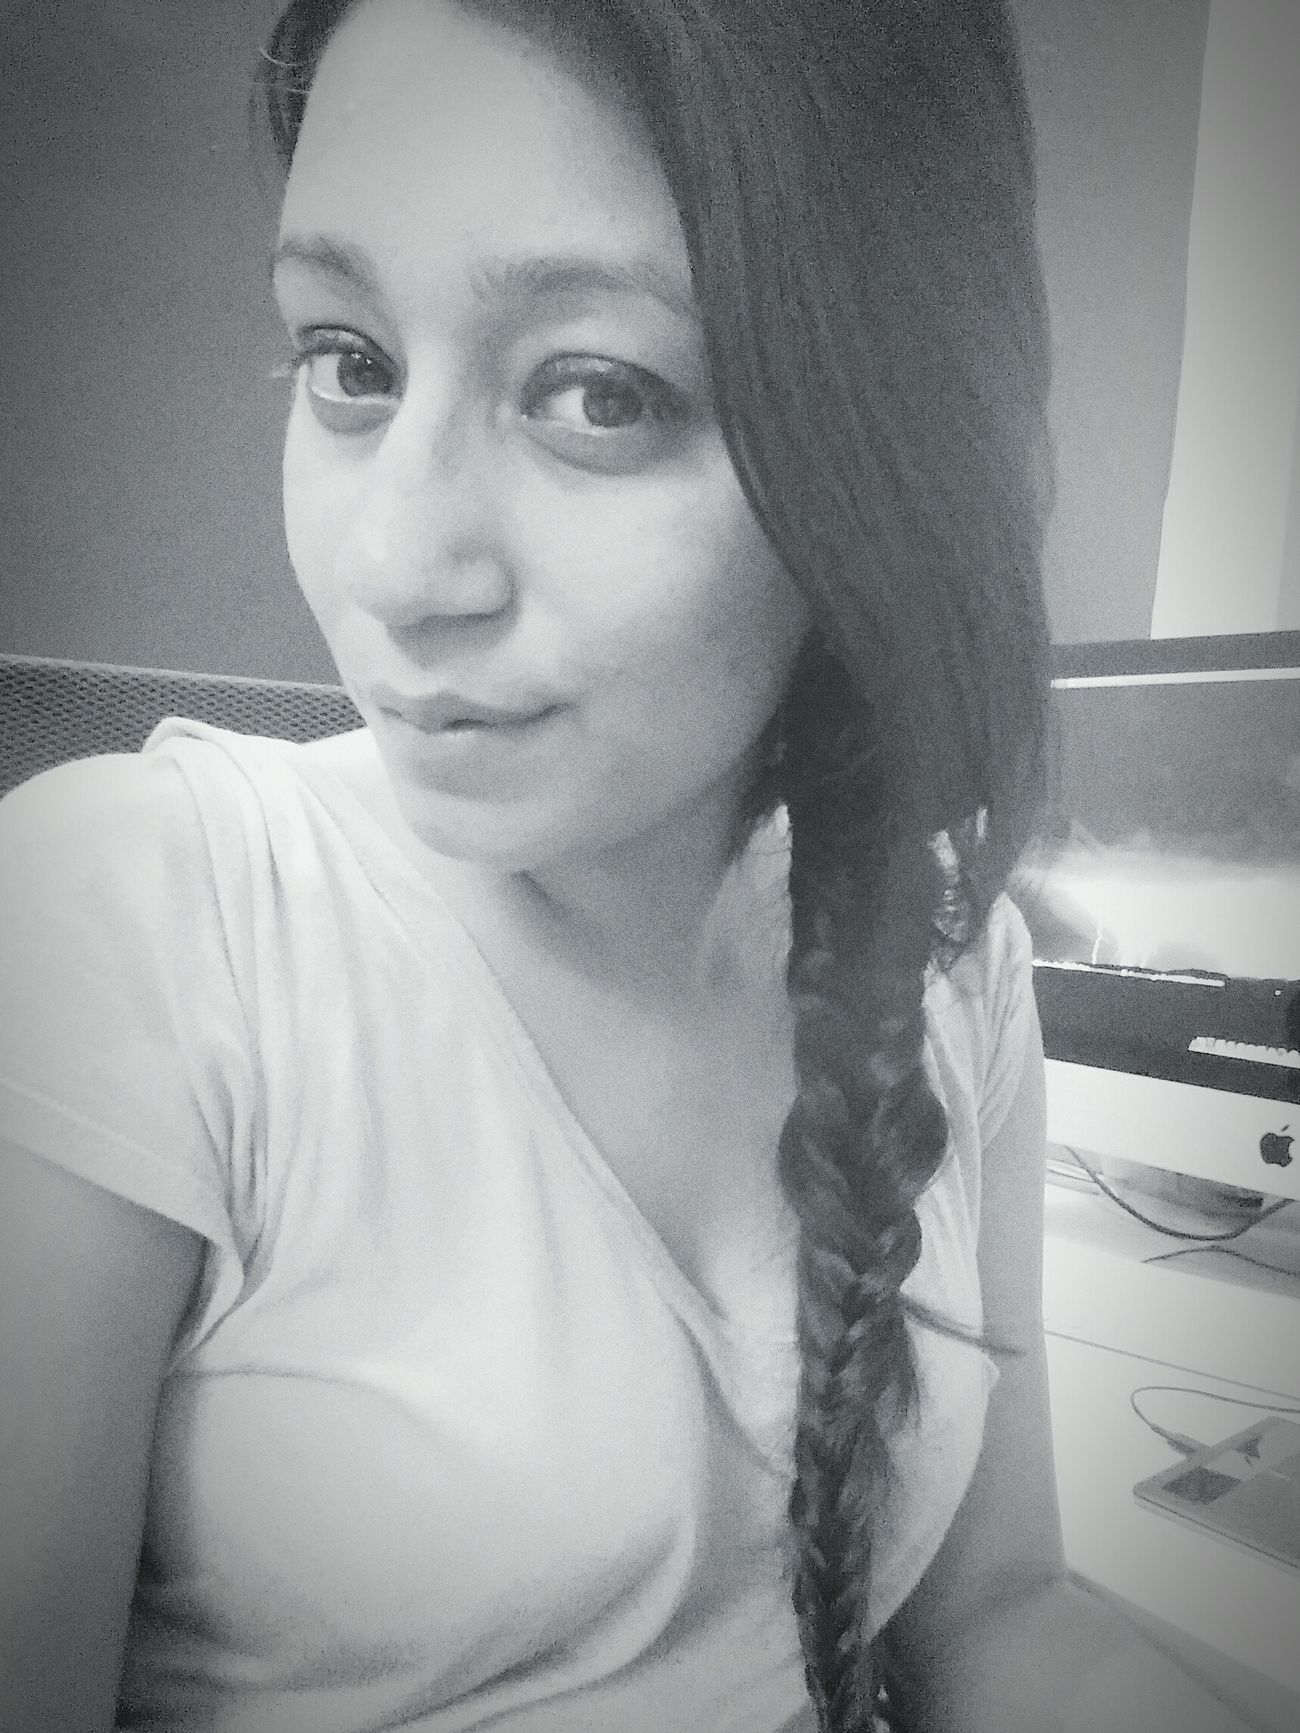 Monochrome Blackandwhite tried making a Fishtail Braid . quite messy. Uhh!